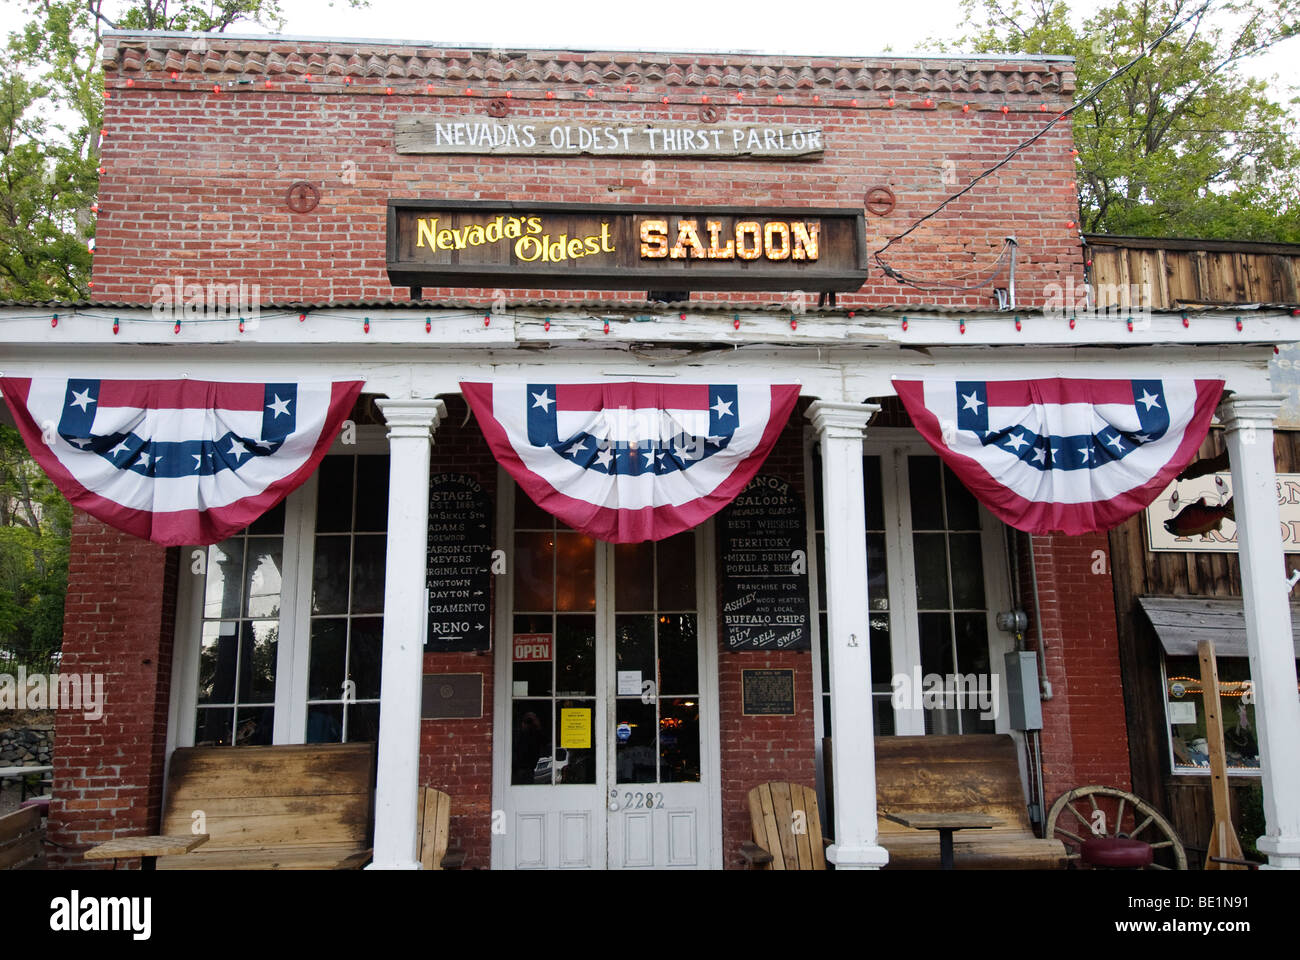 Genoa Nevada High Resolution Stock Photography And Images Alamy